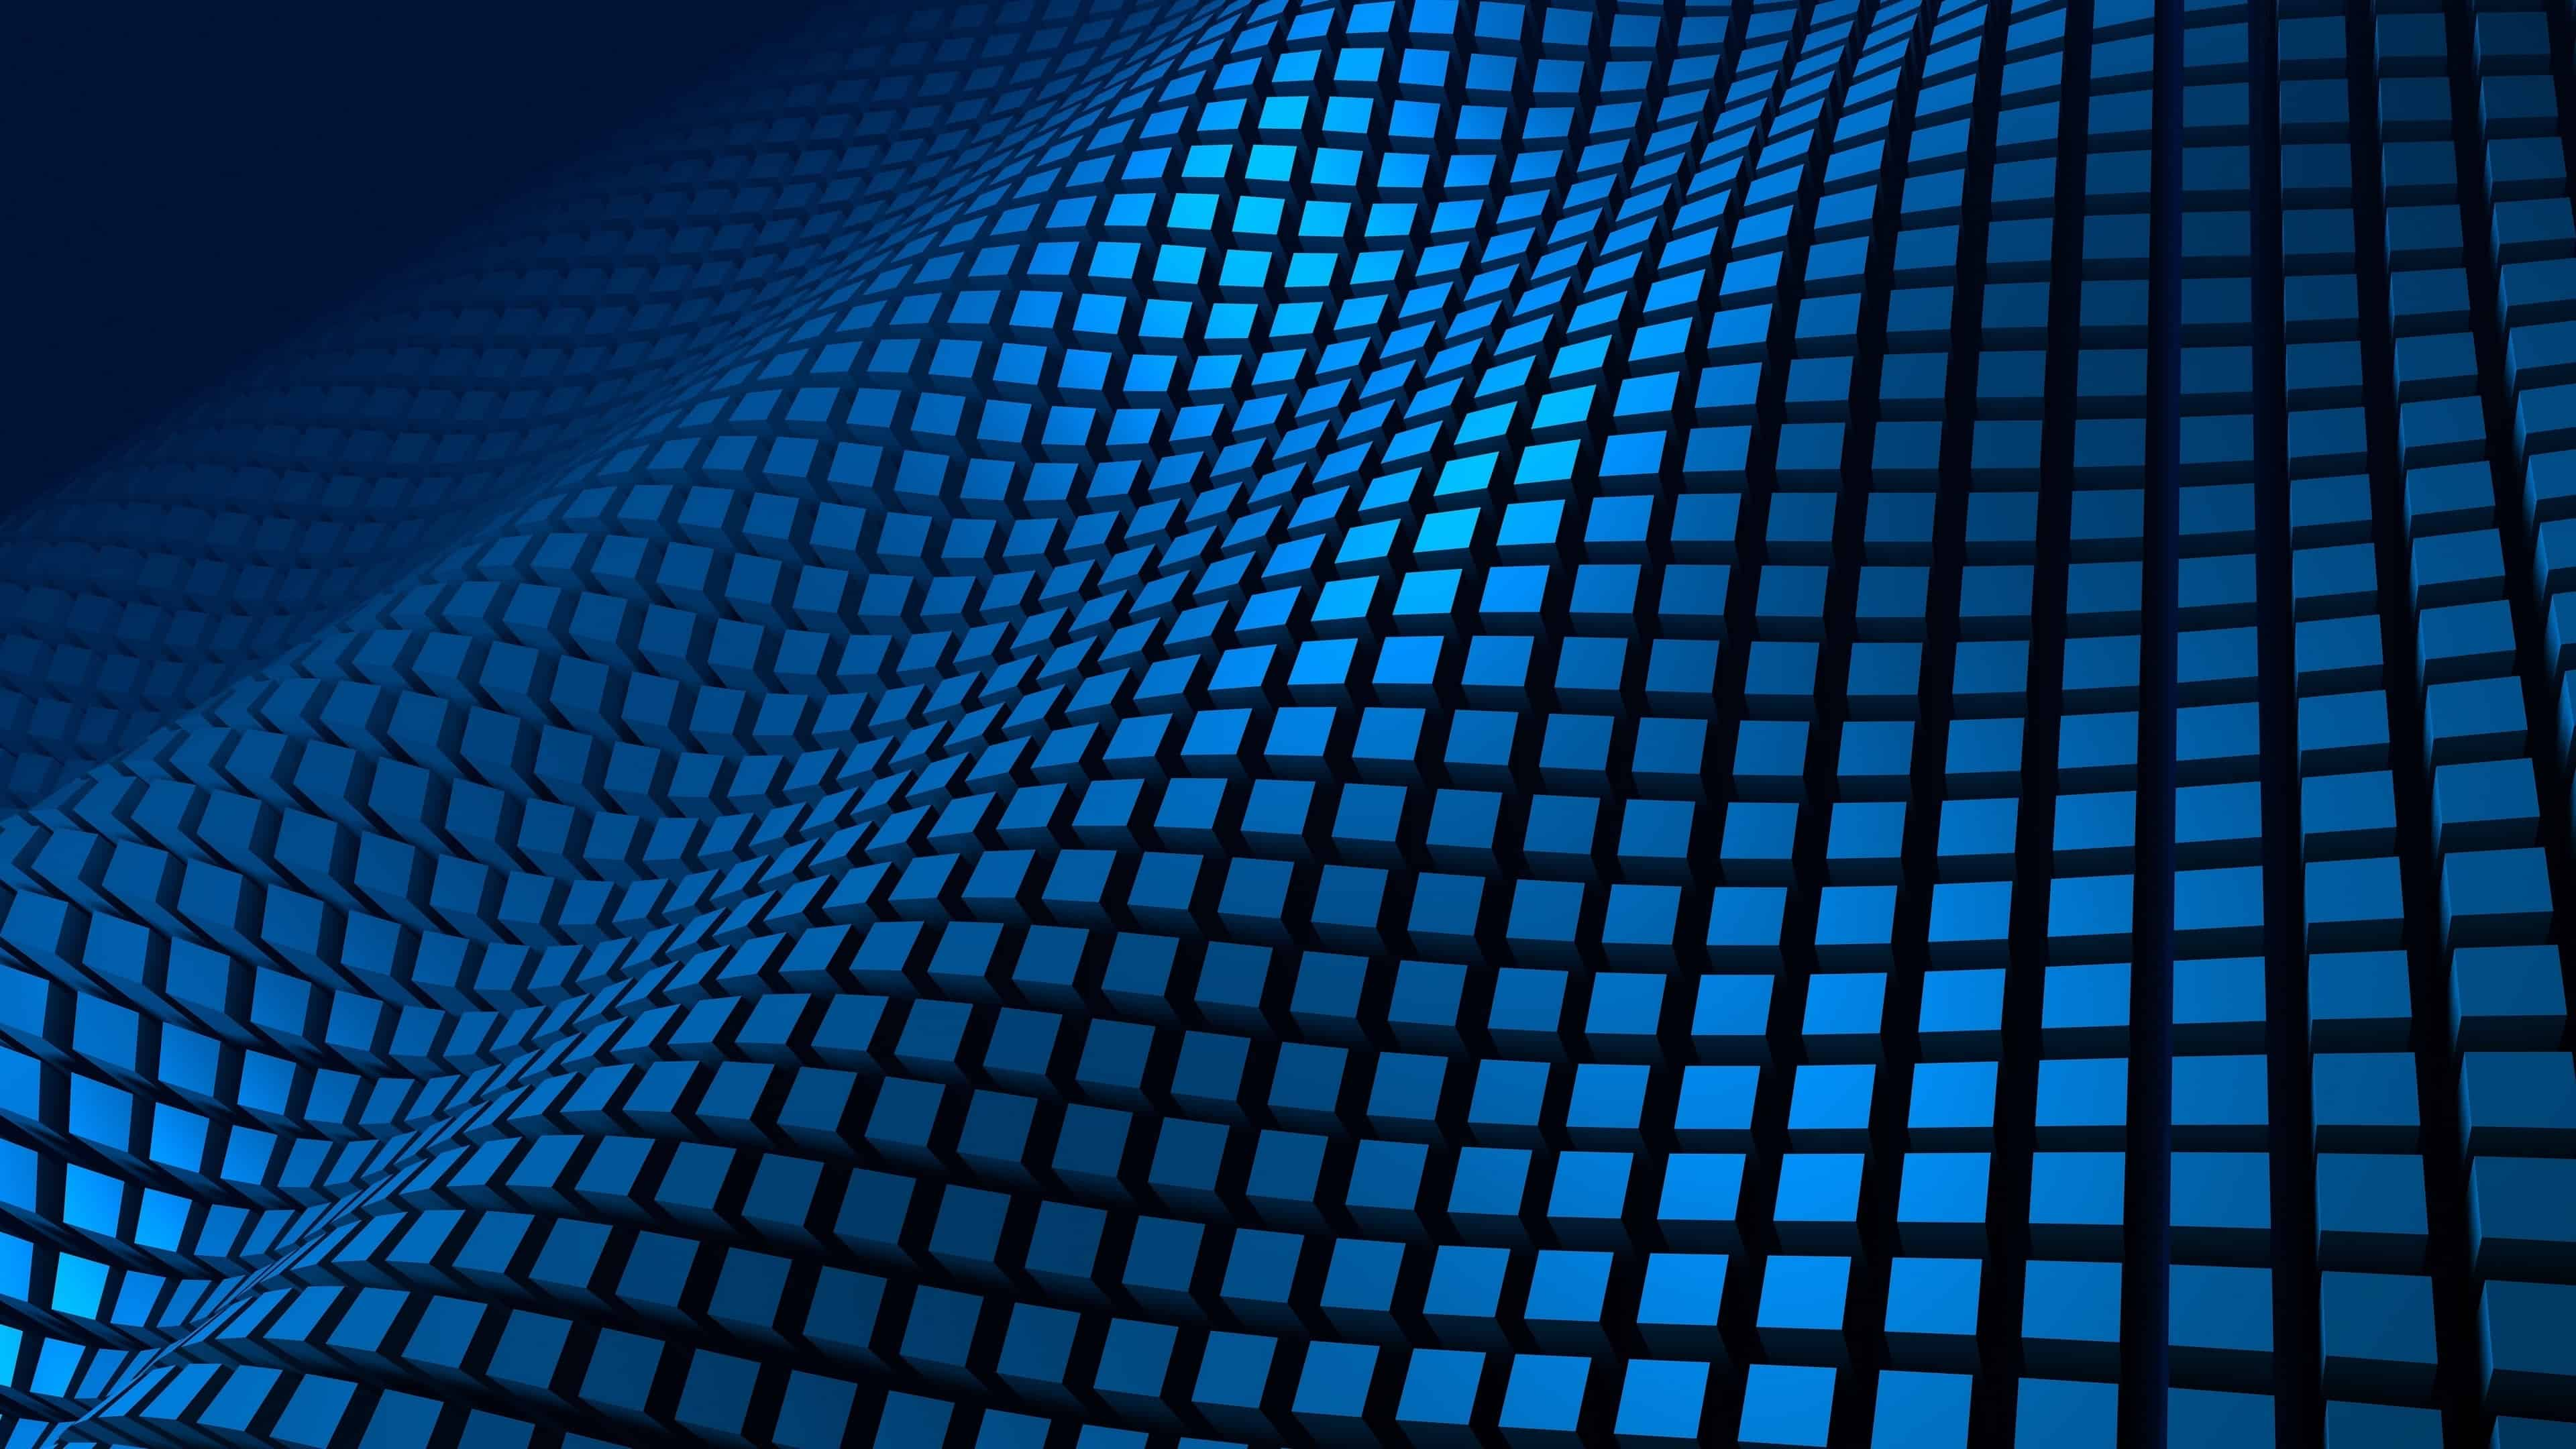 wavy cube pattern blue uhd 4k wallpaper